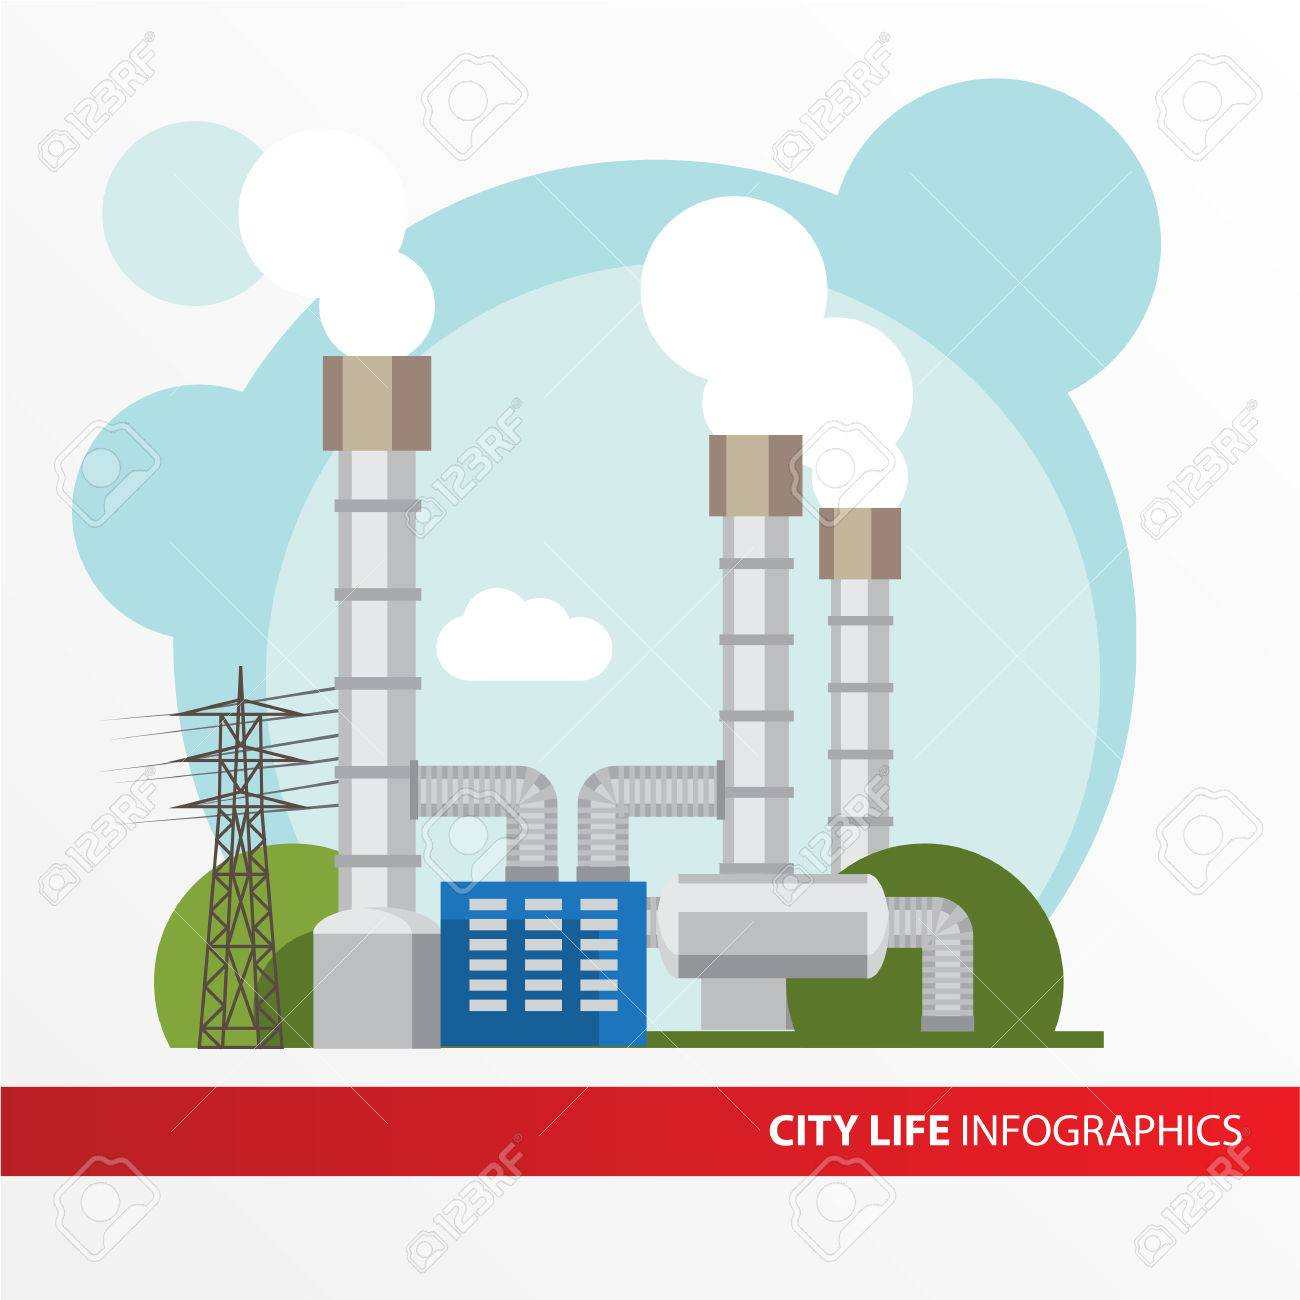 hight resolution of geothermal power station colorful illustration in a flat style city infographics set all types